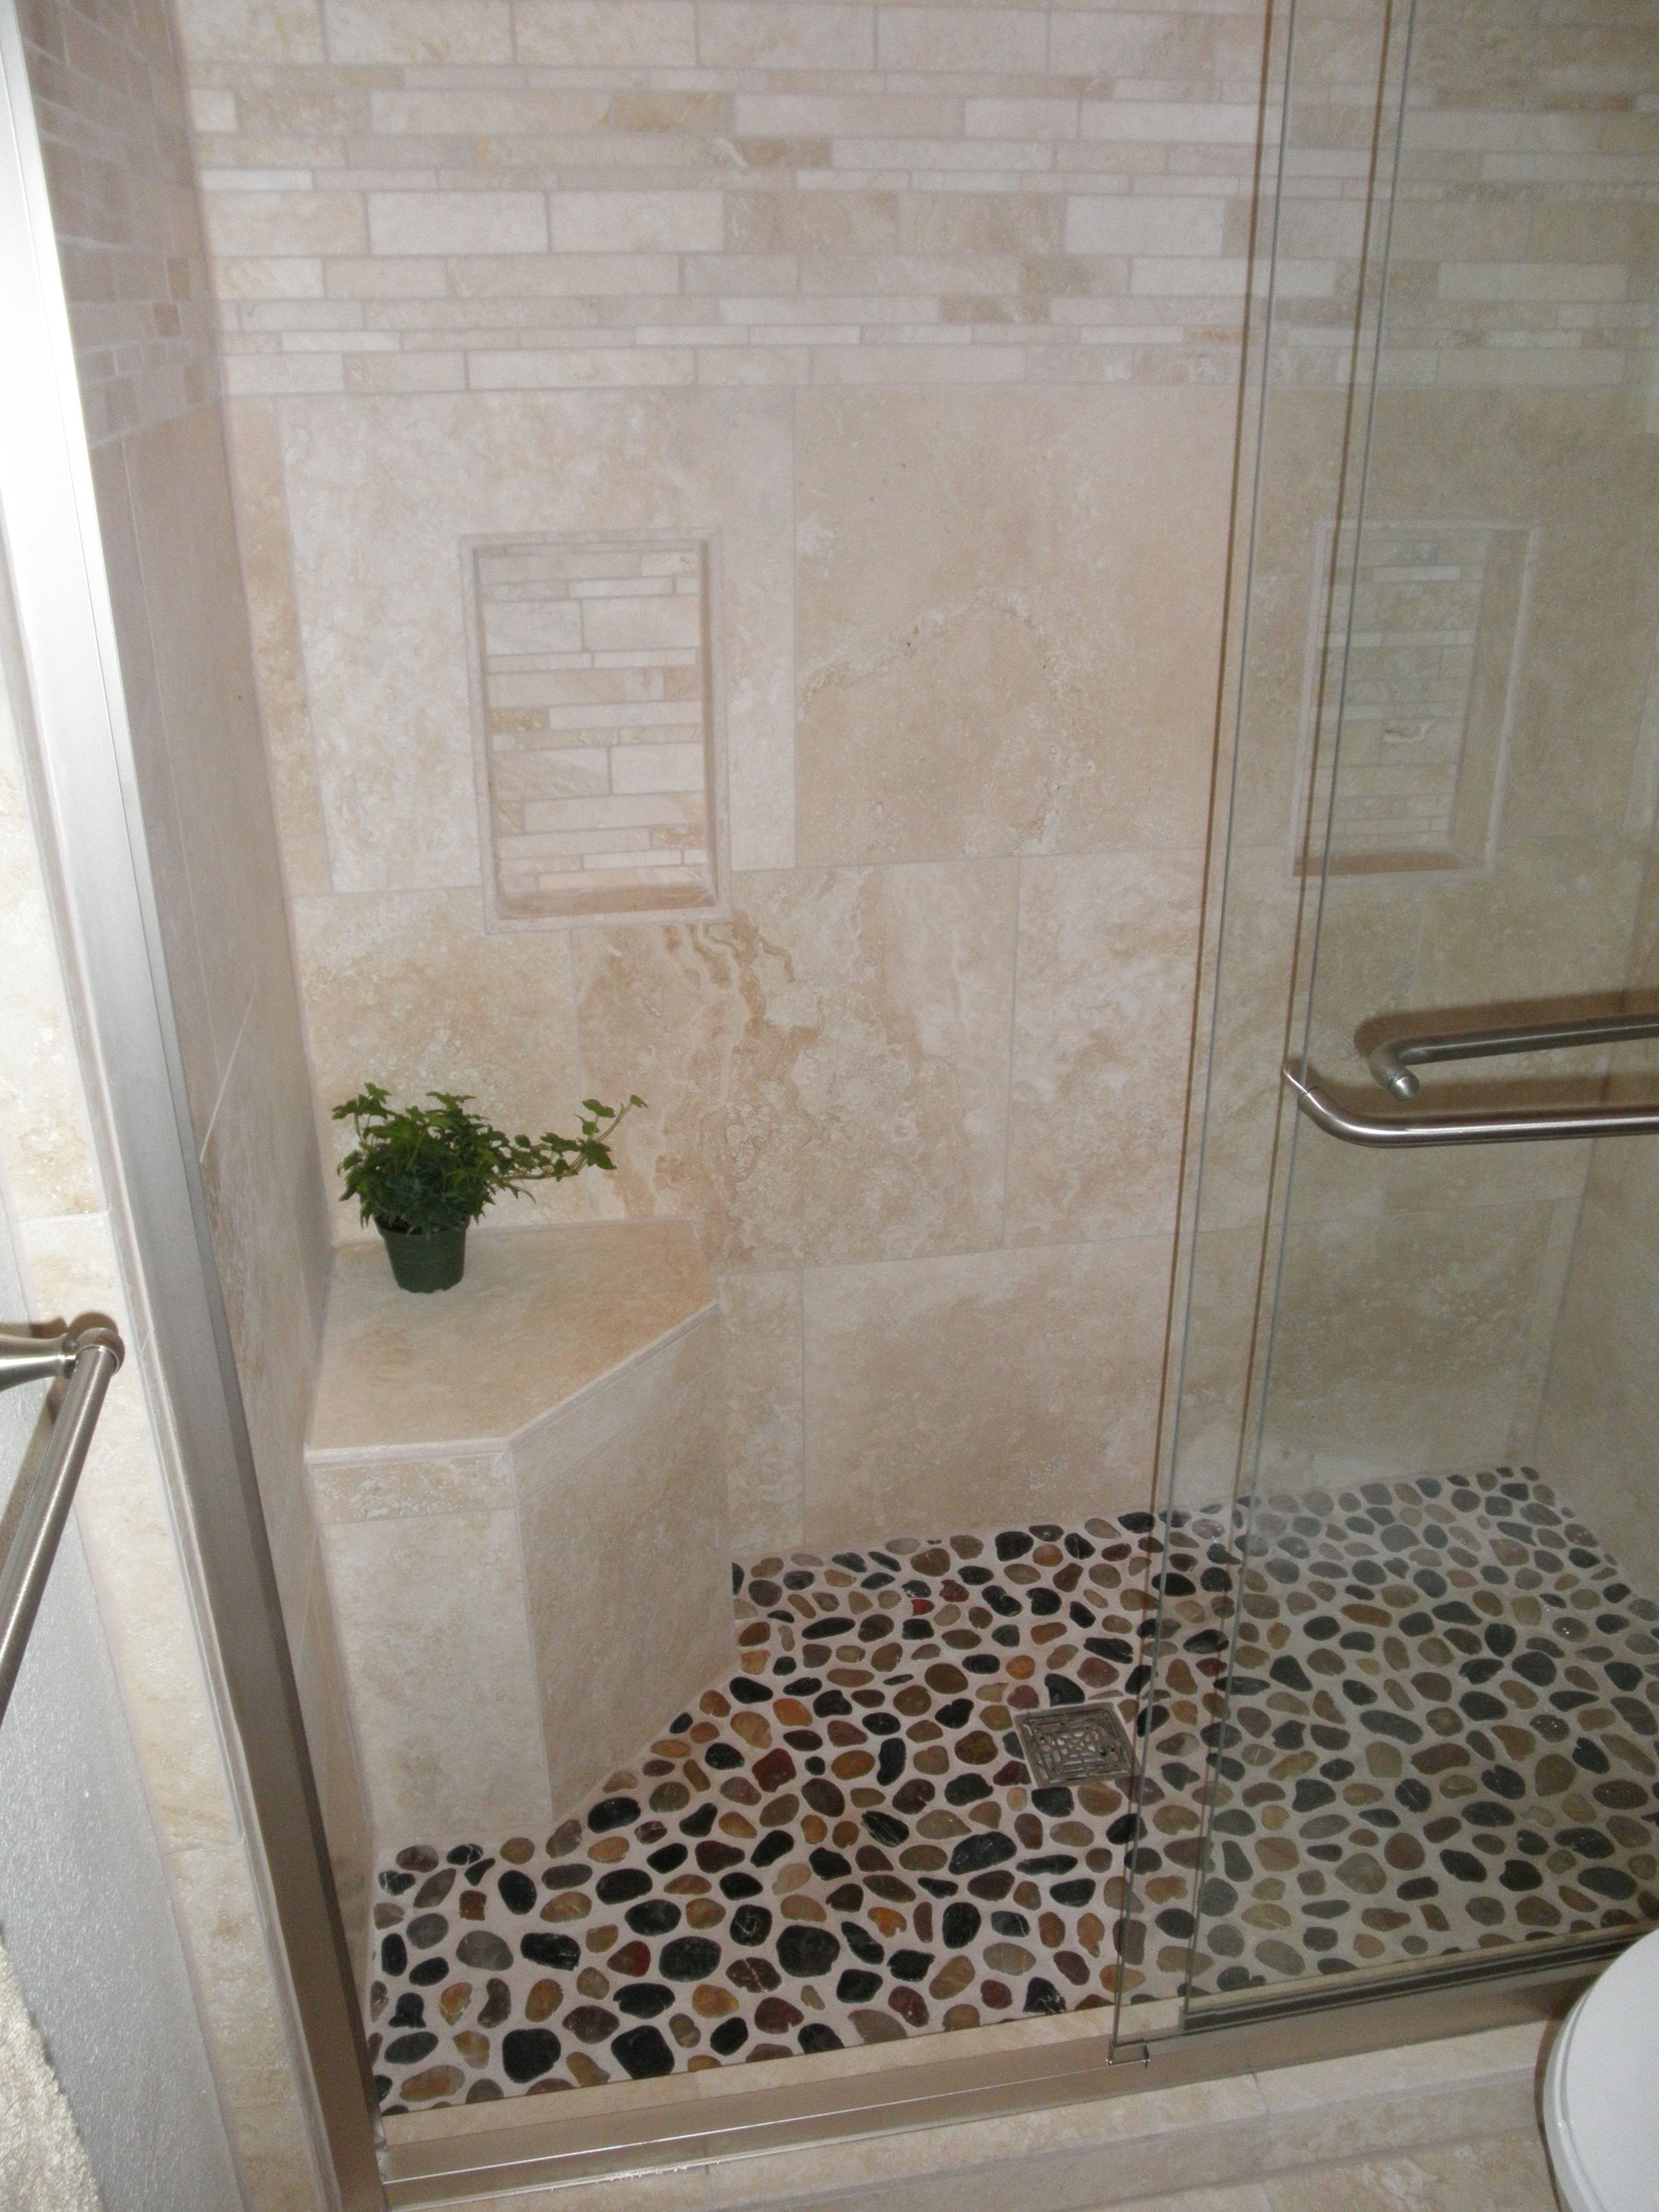 Elegant Shower Remodel Travertine And Pebble Simply Stunning Llc Home Ideas Pinterest